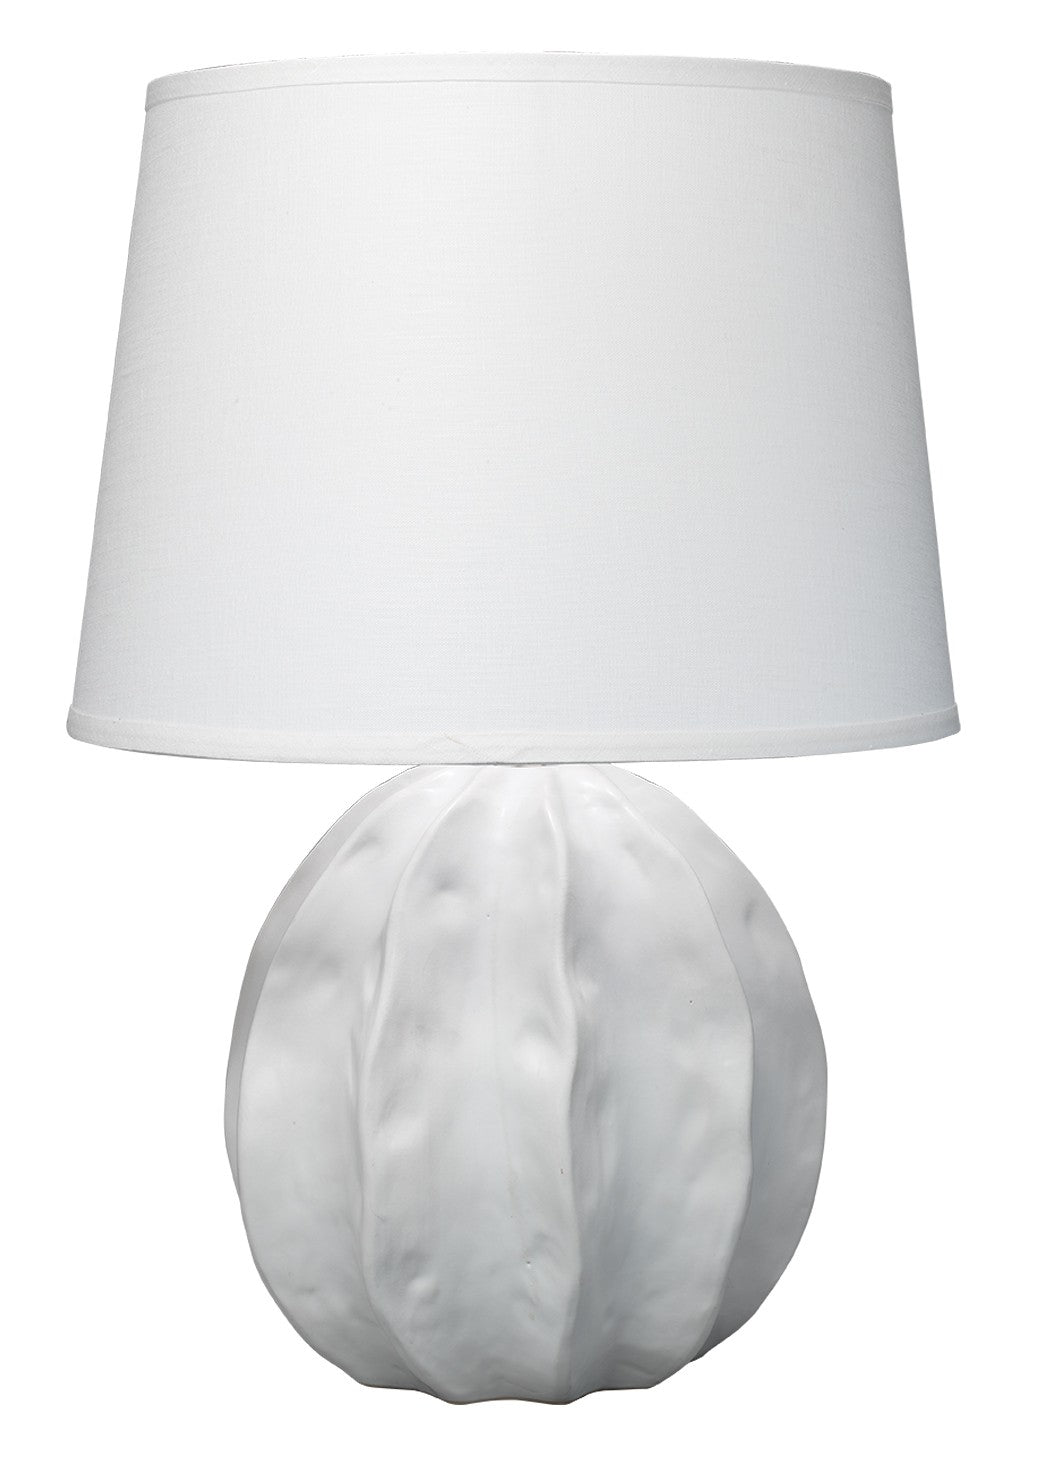 jamie young urchin table lamp white